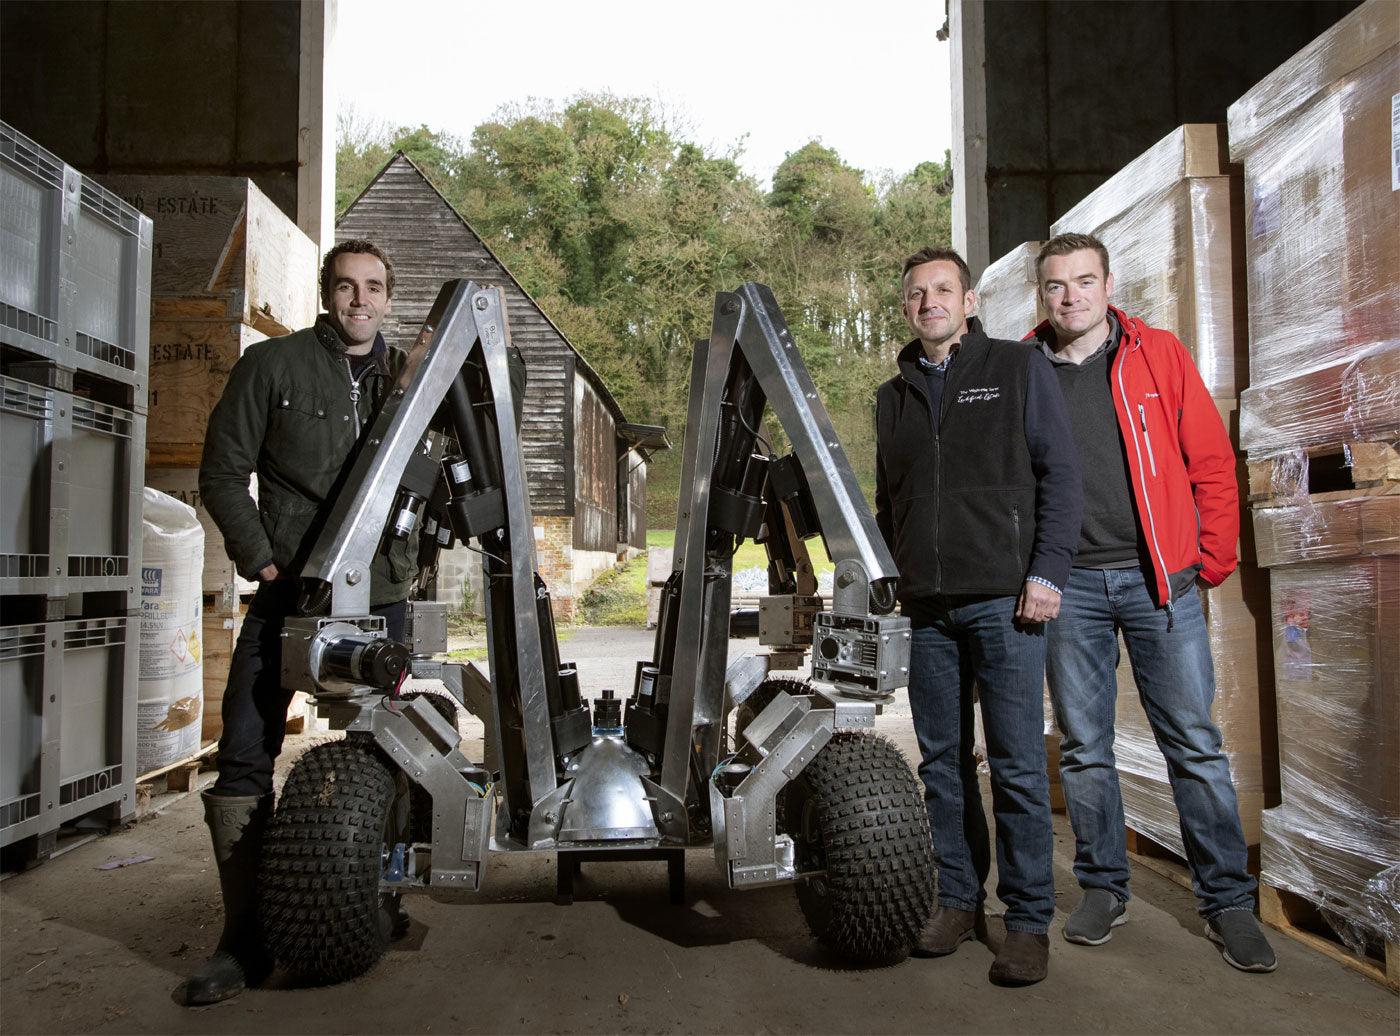 Sam Watson Jones, co-founder of Small Robot Company and fourth generation Shropshire farmer